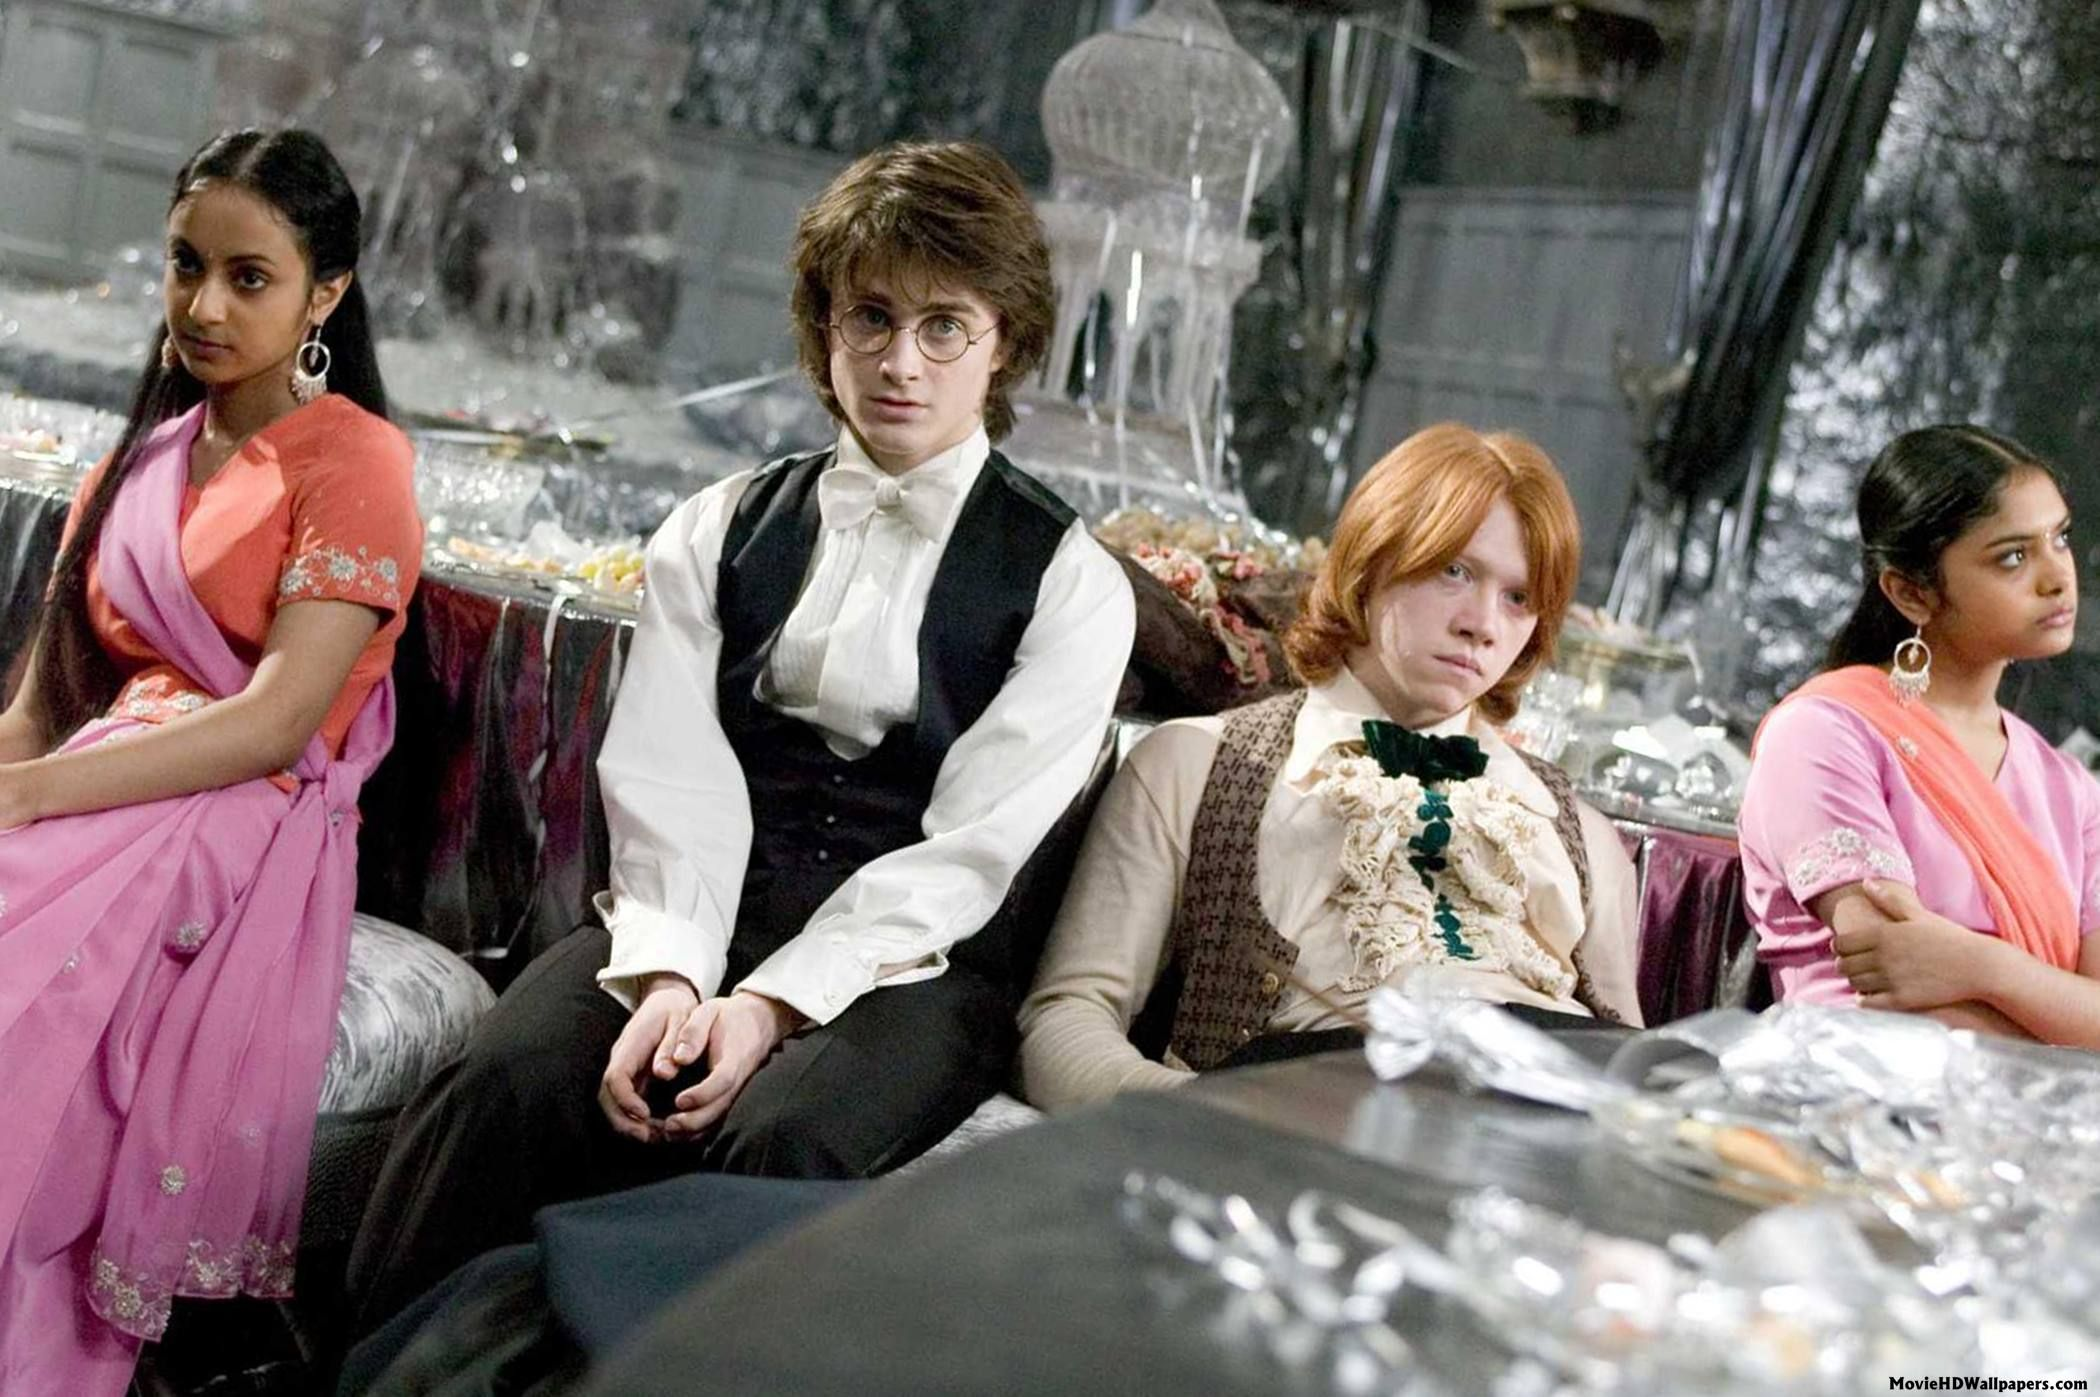 Harry Potter Cast Members Sorted Into Hogwarts Houses Collider